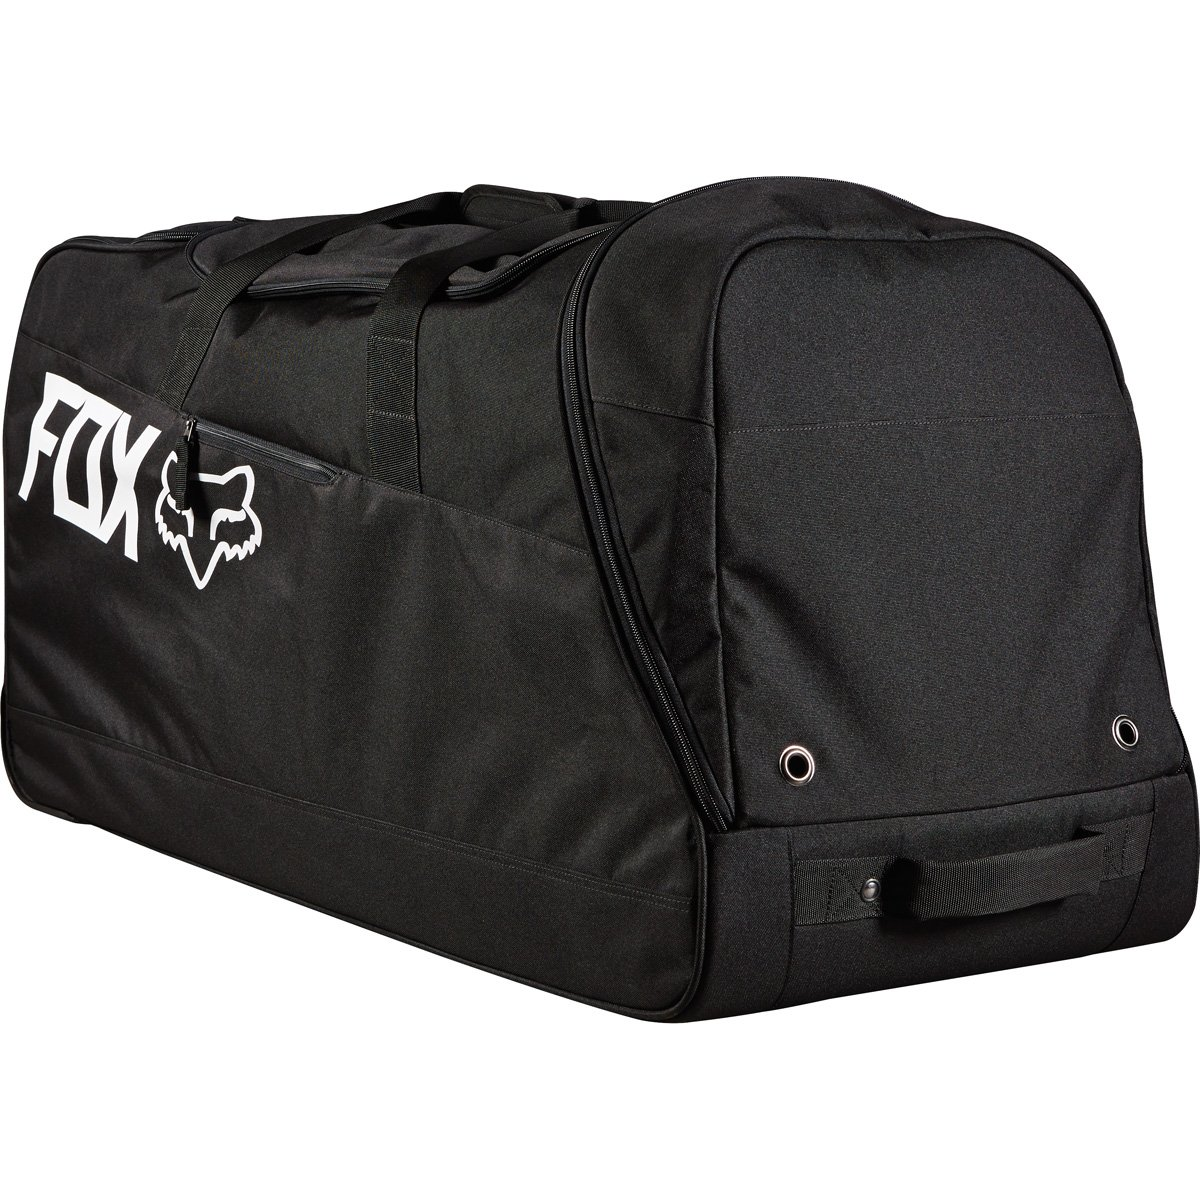 Fox Racing Track Side Roller Sports Gear Bag - Black / One Size by Fox Racing (Image #2)